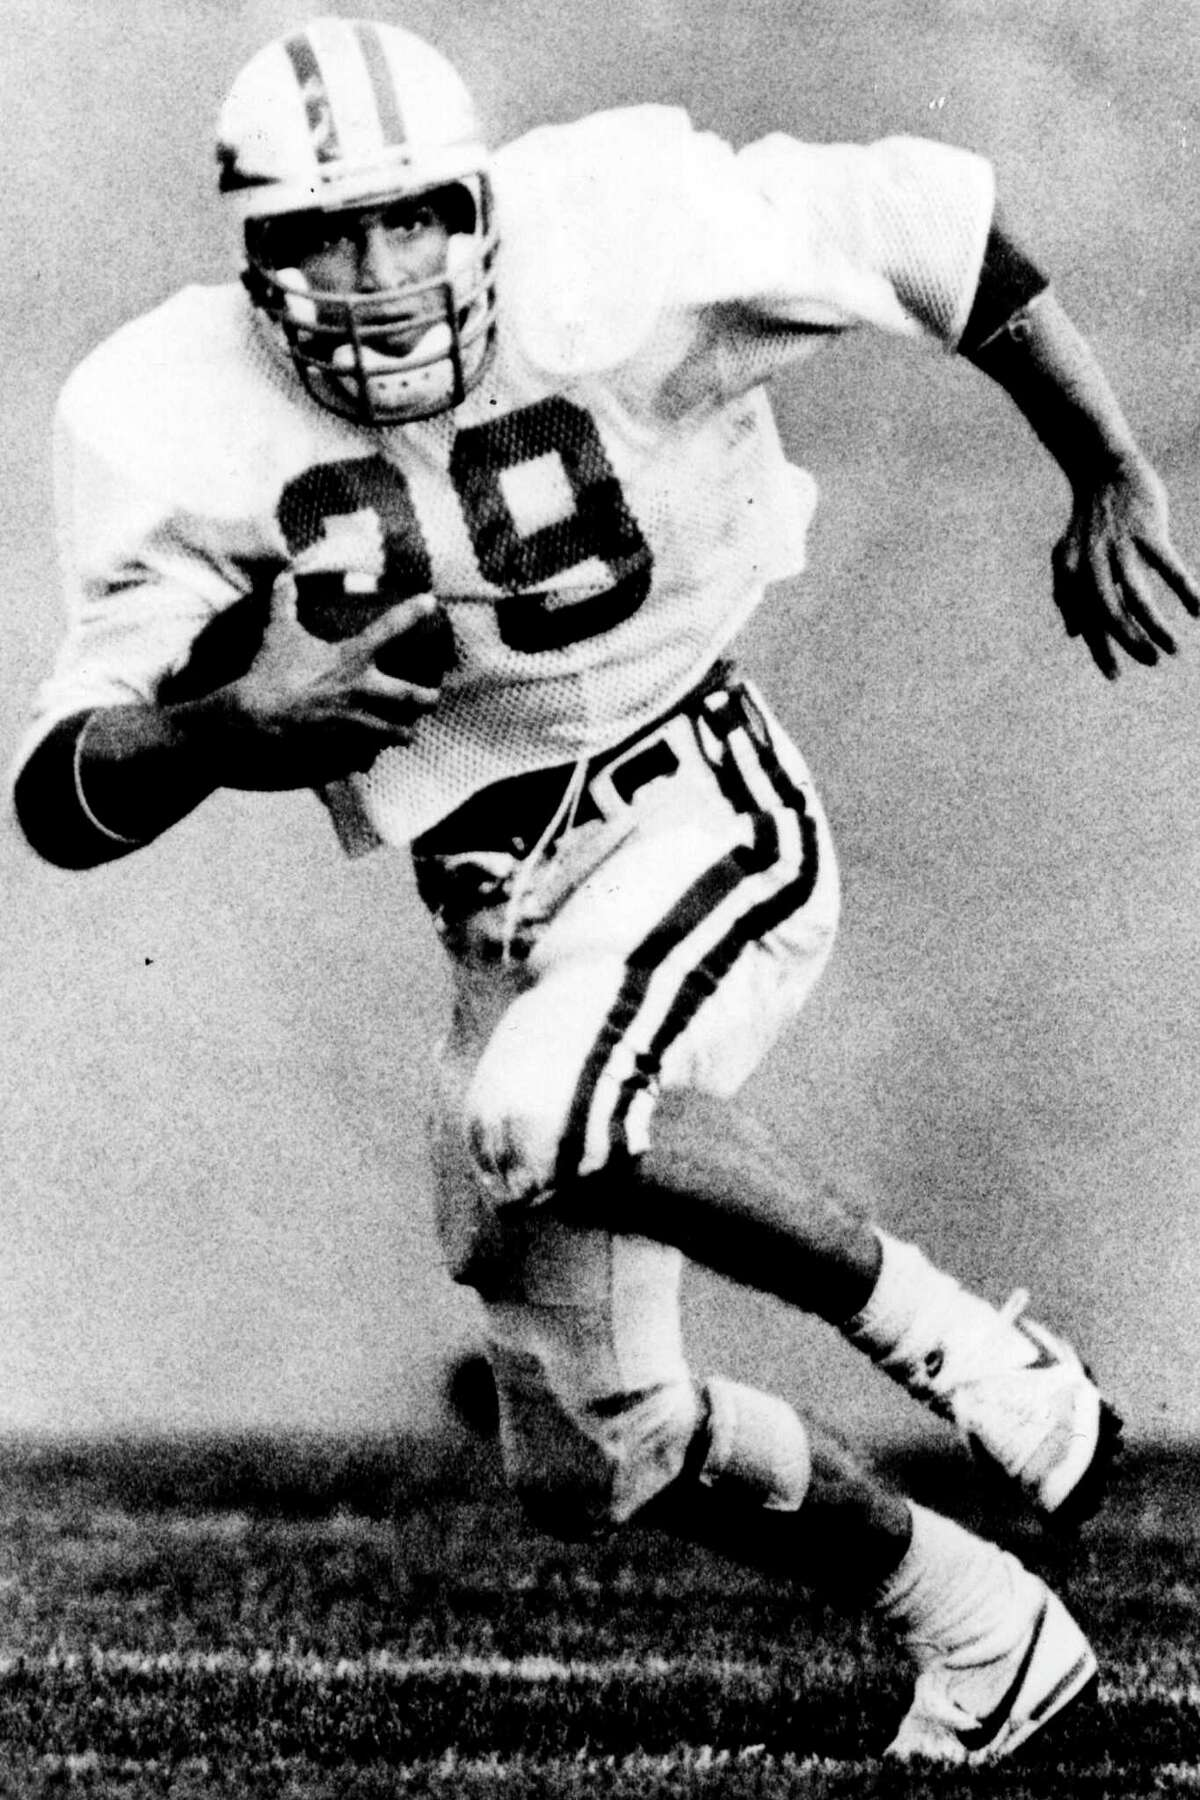 Scott Thomas at Air Force, returning a kick in the mid-1980's.